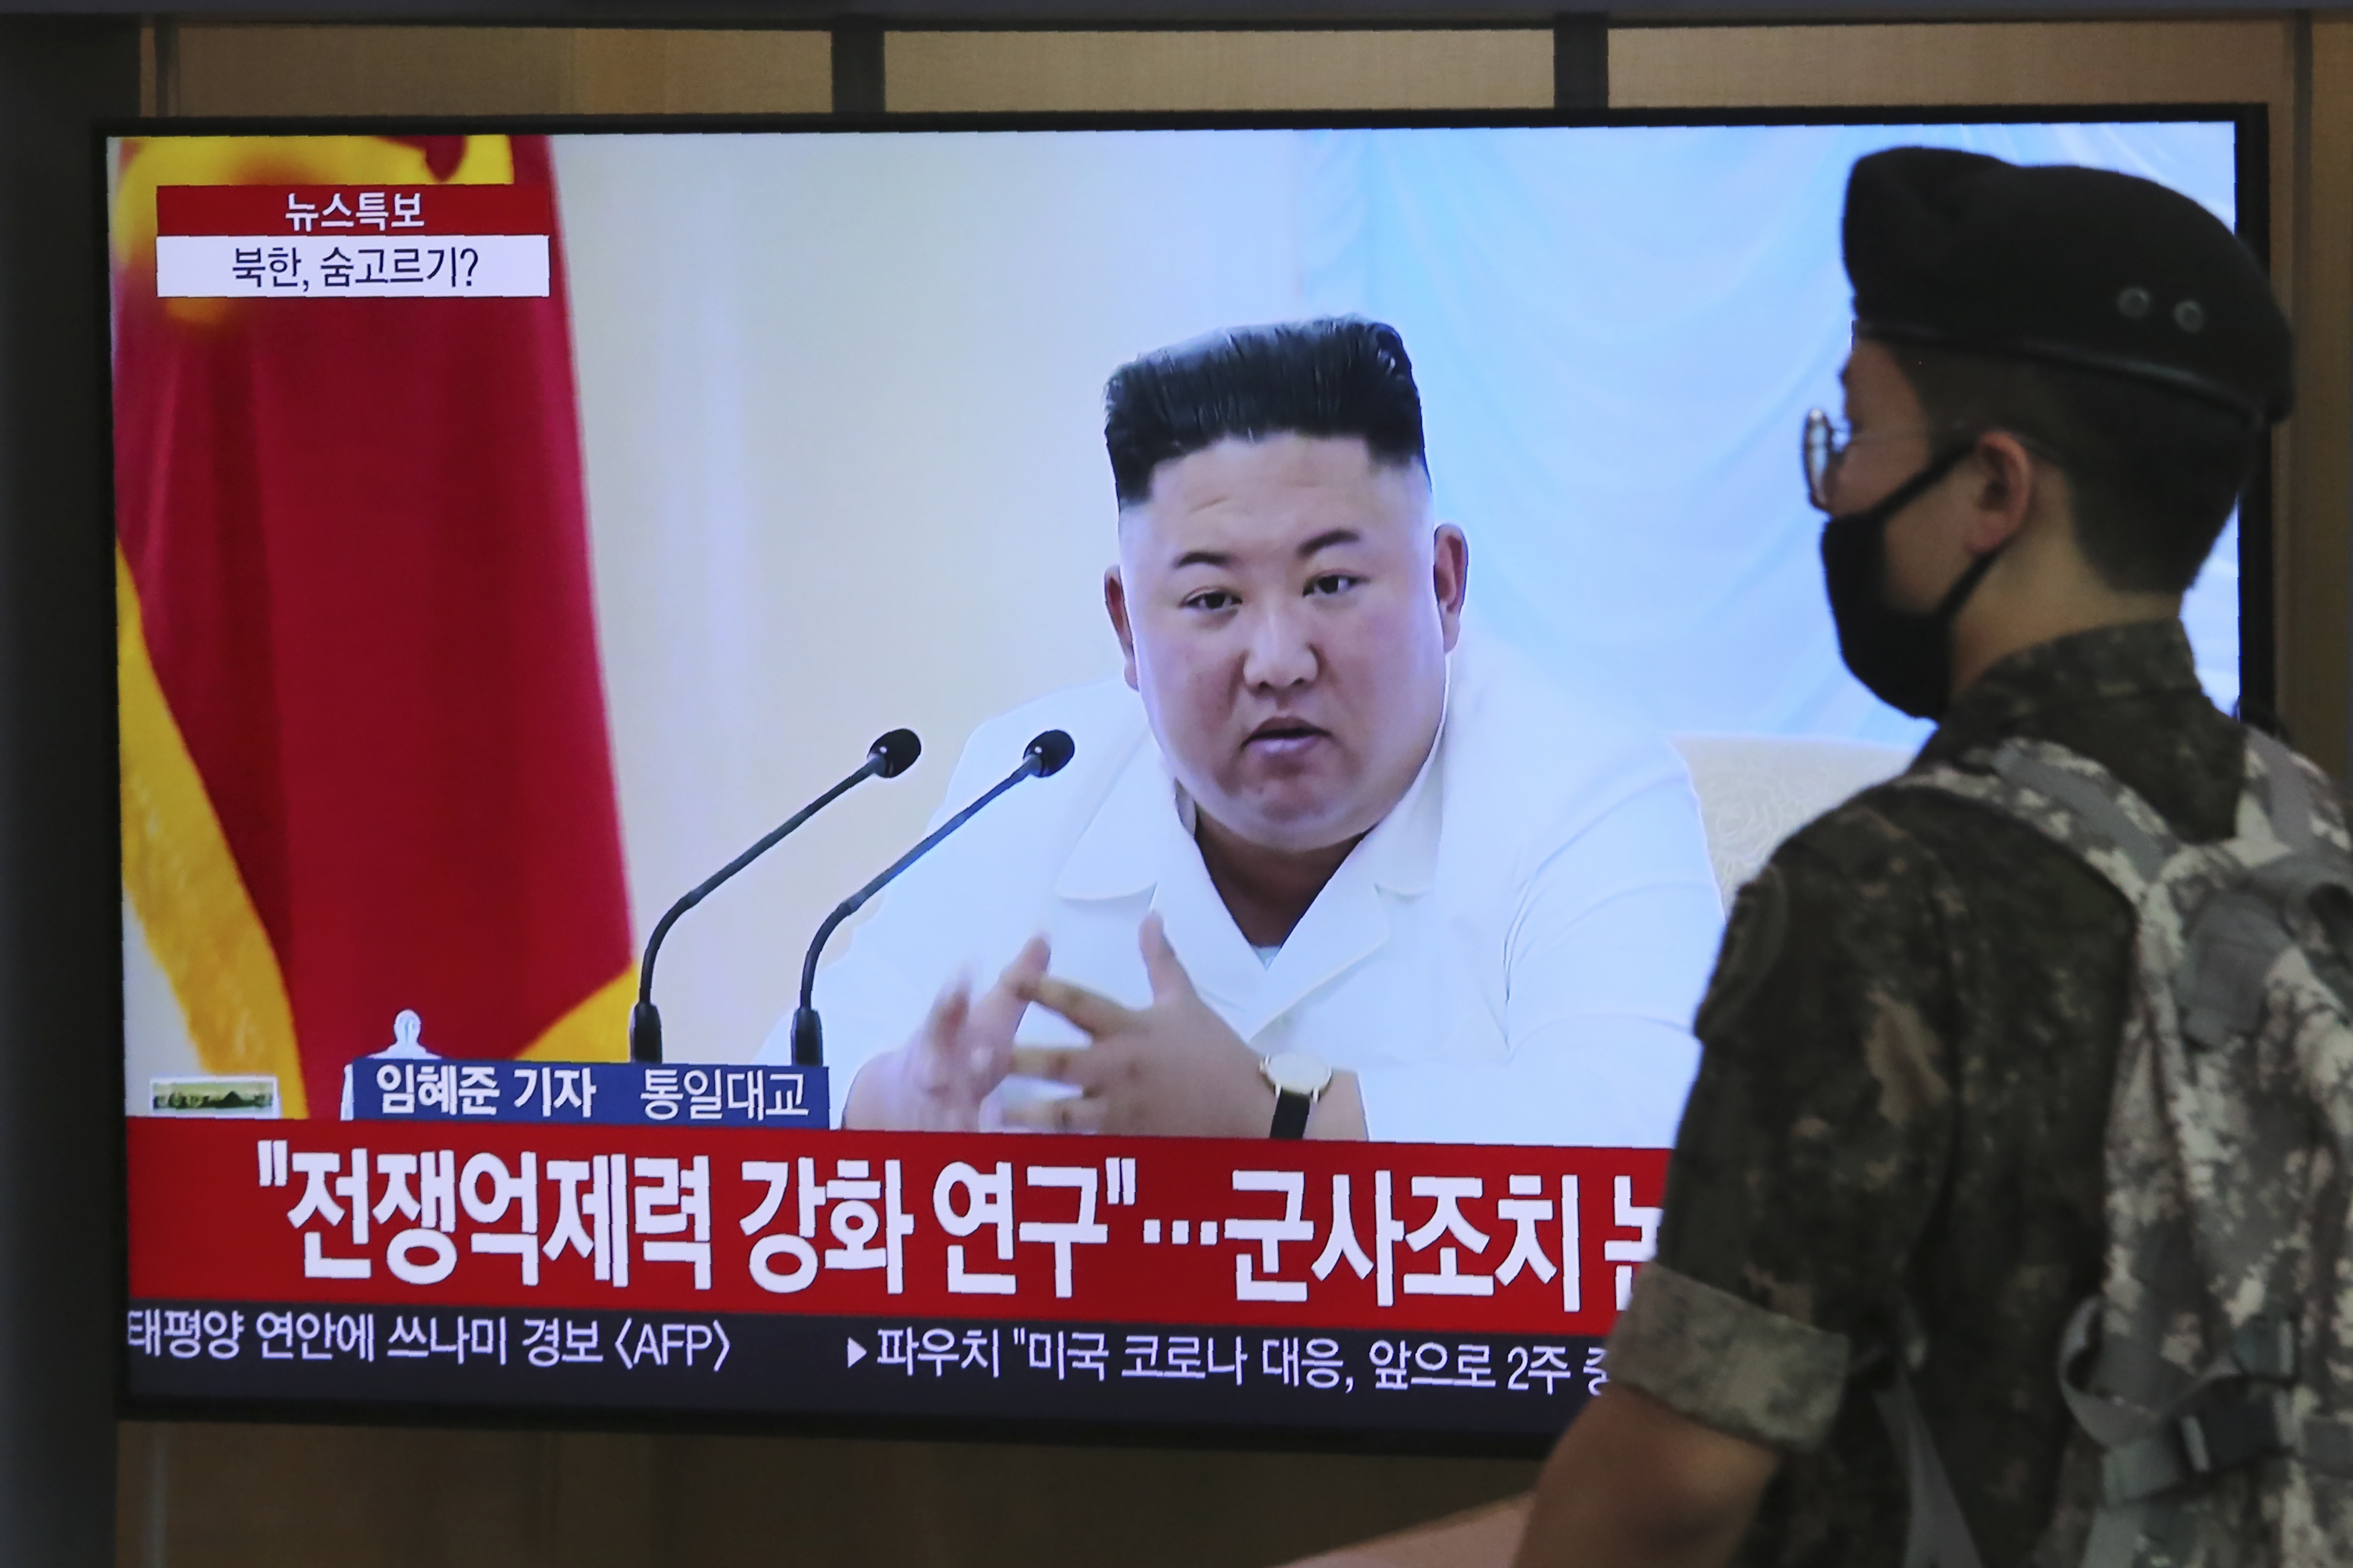 A South Korean army soldier passes by a TV showing a file image of North Korean leader Kim Jong Un during a news program at the Seoul Railway Station in Seoul, South Korea, Wednesday, June 24, 2020. Kim suspended his military's plans to take unspecified retaliatory action against South Korea, state media said Wednesday, possibly slowing a pressure campaign against its rival amid stalled nuclear negotiations with the Trump administration. The Korean letters read:  Strengthening deterrence of war.